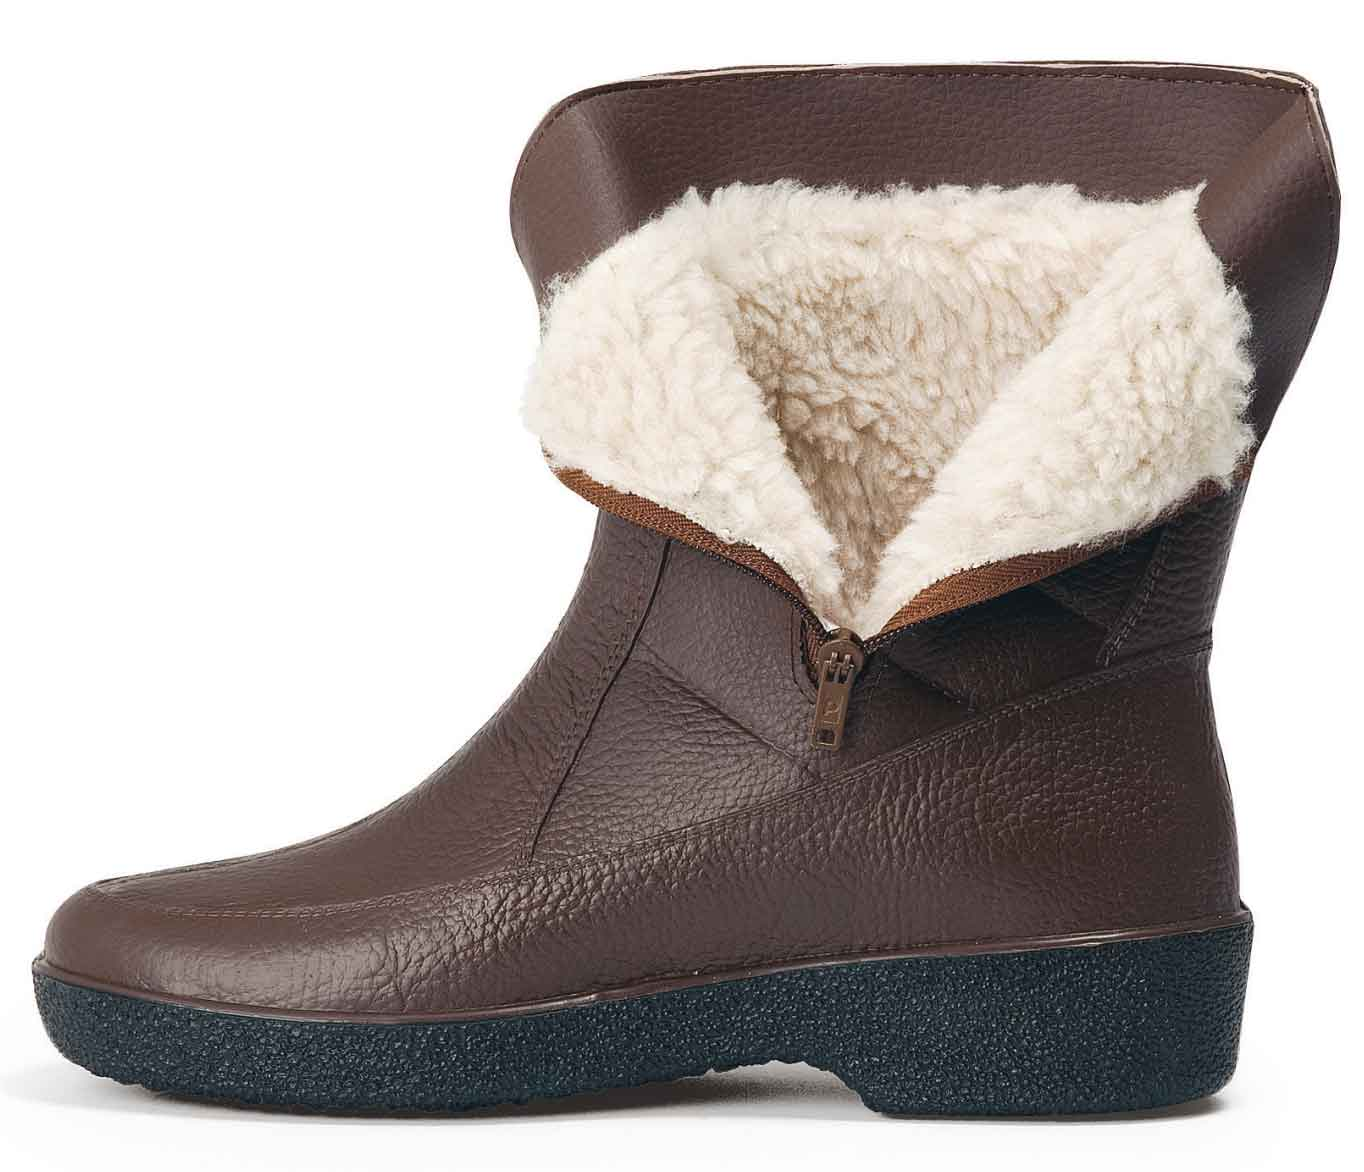 Free shipping BOTH ways on fleece lined womens boots, from our vast selection of styles. Fast delivery, and 24/7/ real-person service with a smile. Click or call